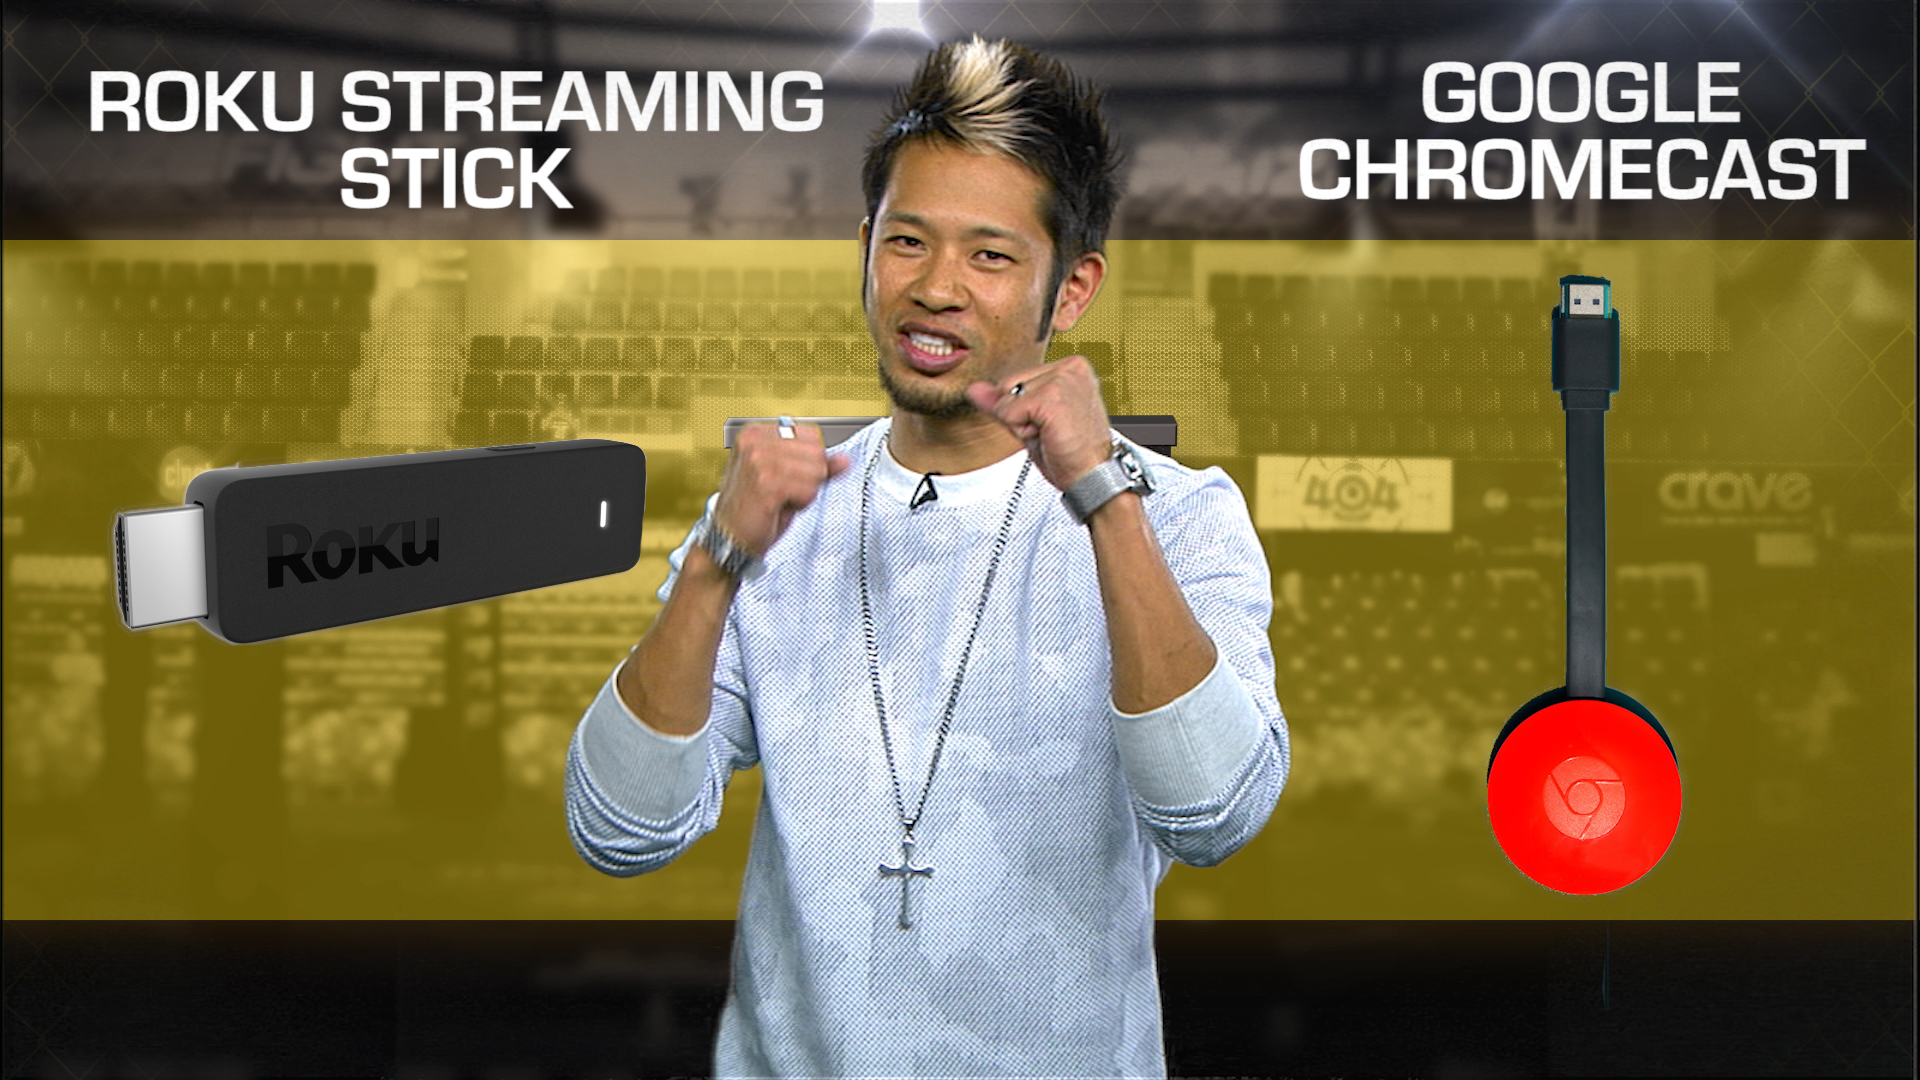 Video: New Roku Streaming Stick vs. Google Chromecast